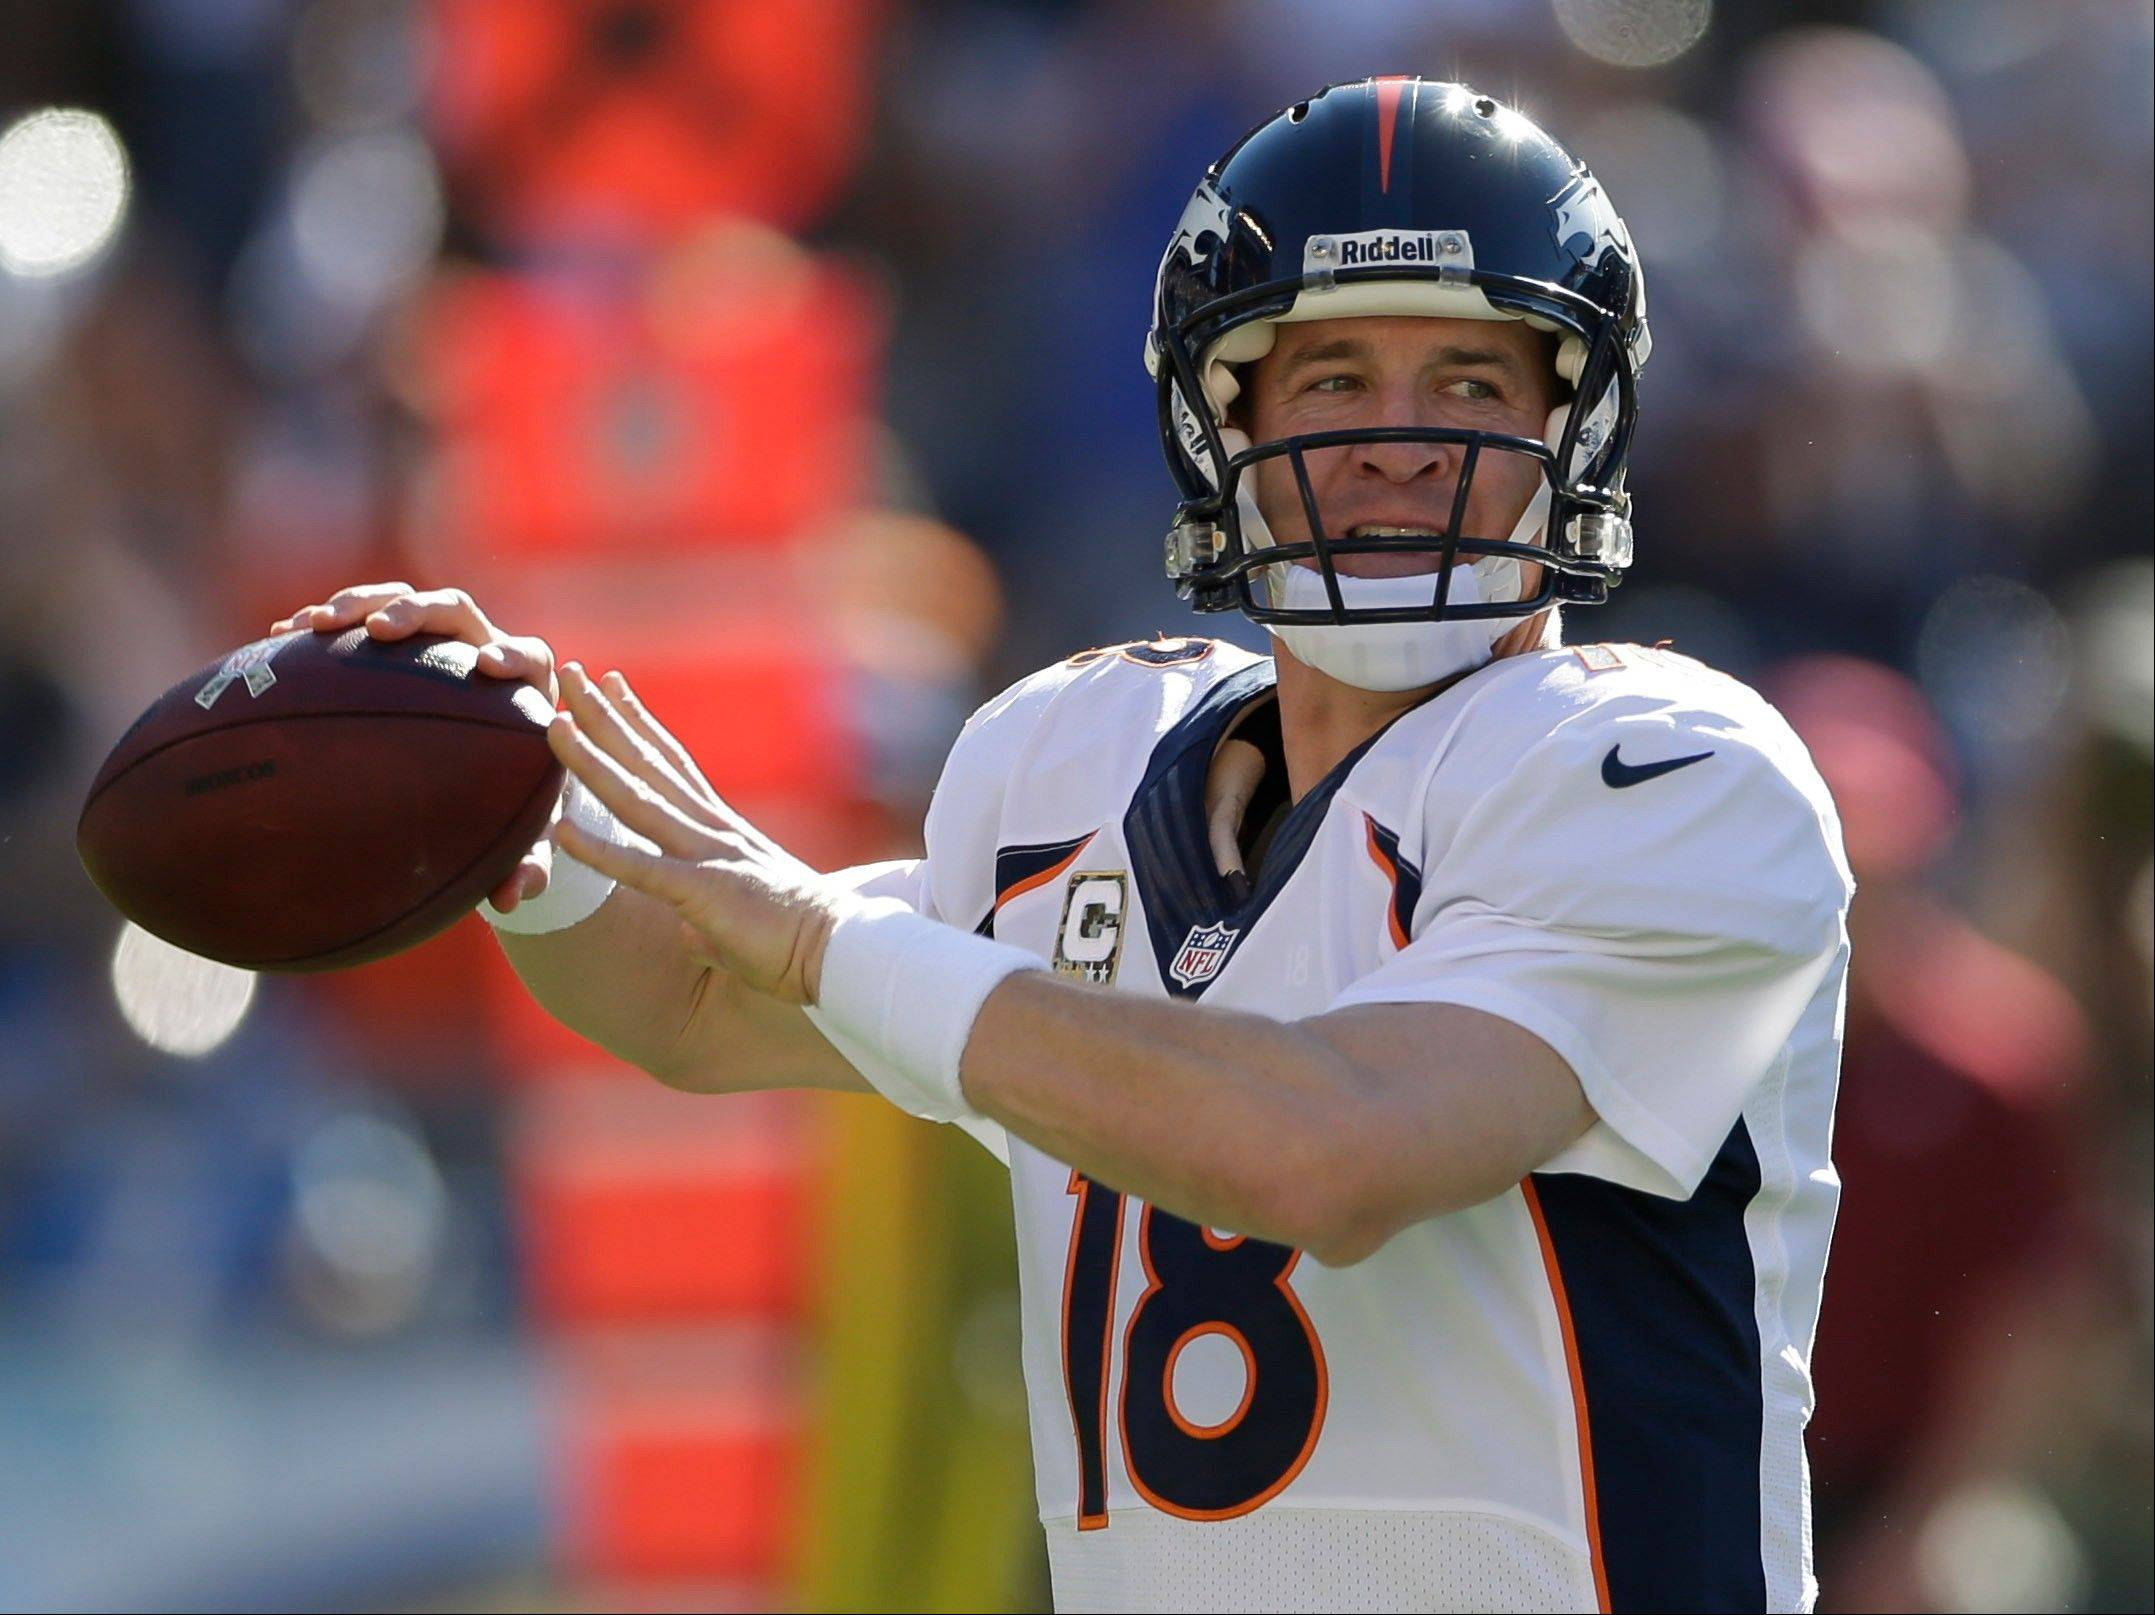 Denver Broncos quarterback Peyton Manning throws a pass Sunday during the second half against the San Diego Chargers in San Diego.